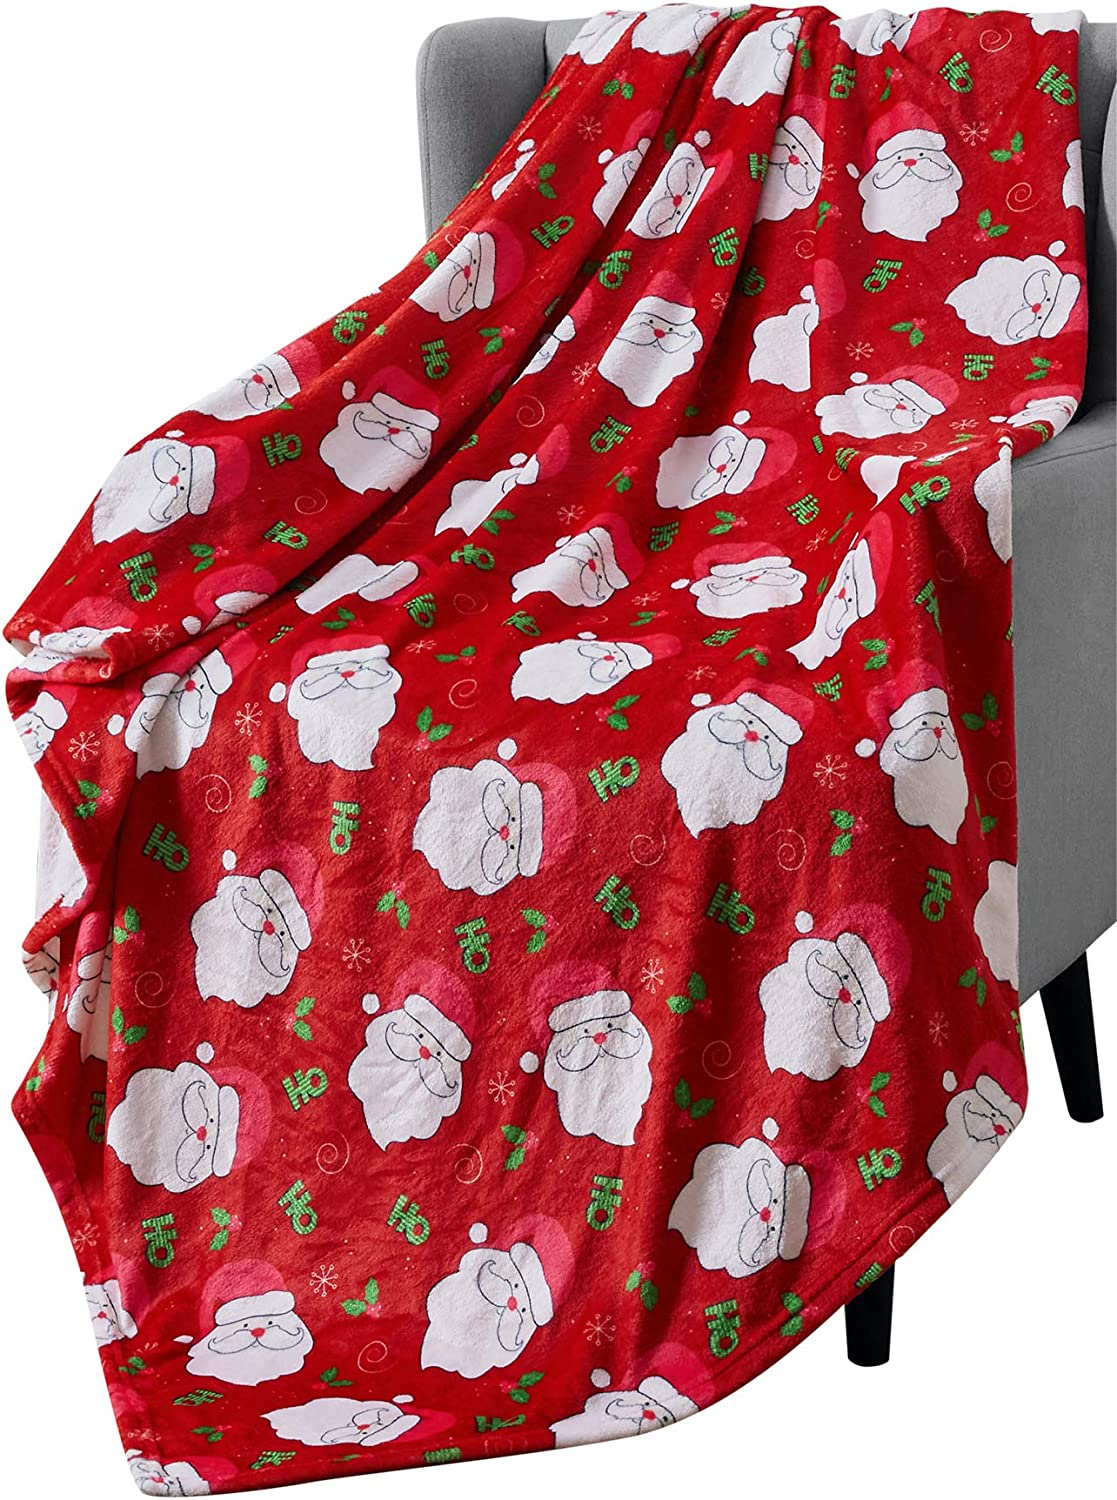 Holiday Christmas Decorative Throw Blanket: Soft Comfy Velvet Plush Cute Santa Claus Pattern, Accent for Couch Bed Chair, Red White Green (Santa)